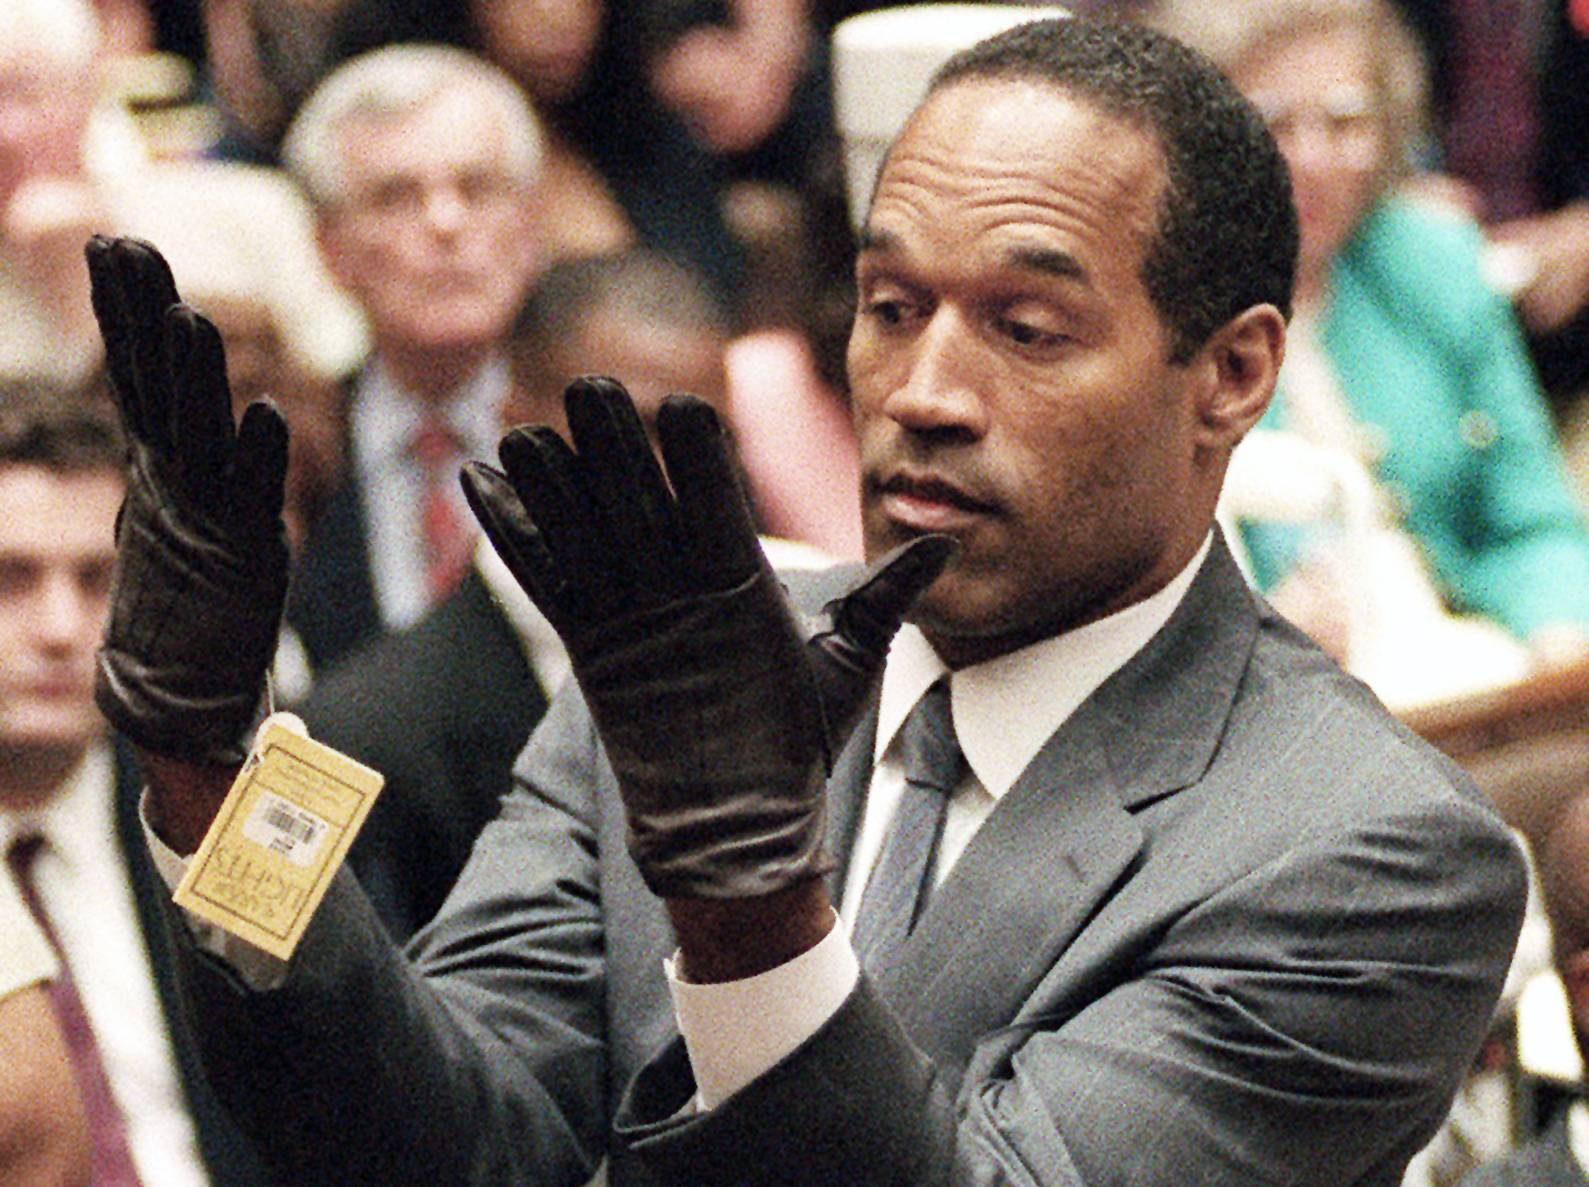 O.J. Simpson holds up his hands before the jury after putting on a new pair of gloves similar to the infamous bloody gloves during his double-murder trial in Los Angeles.